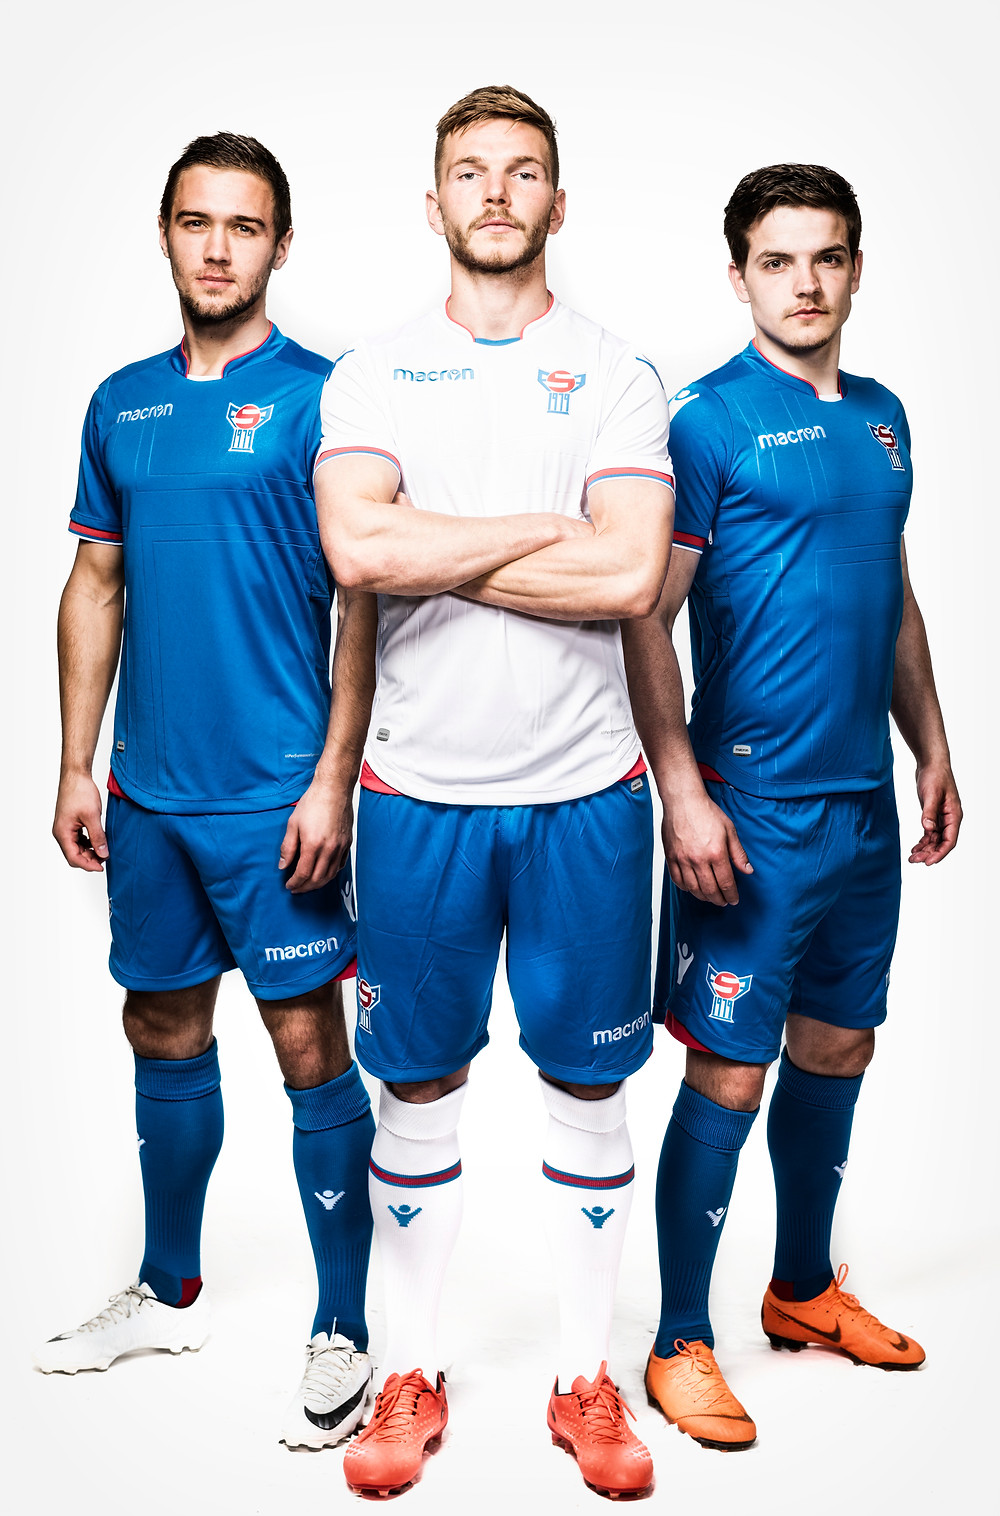 Some of the top football players of the Faroe team